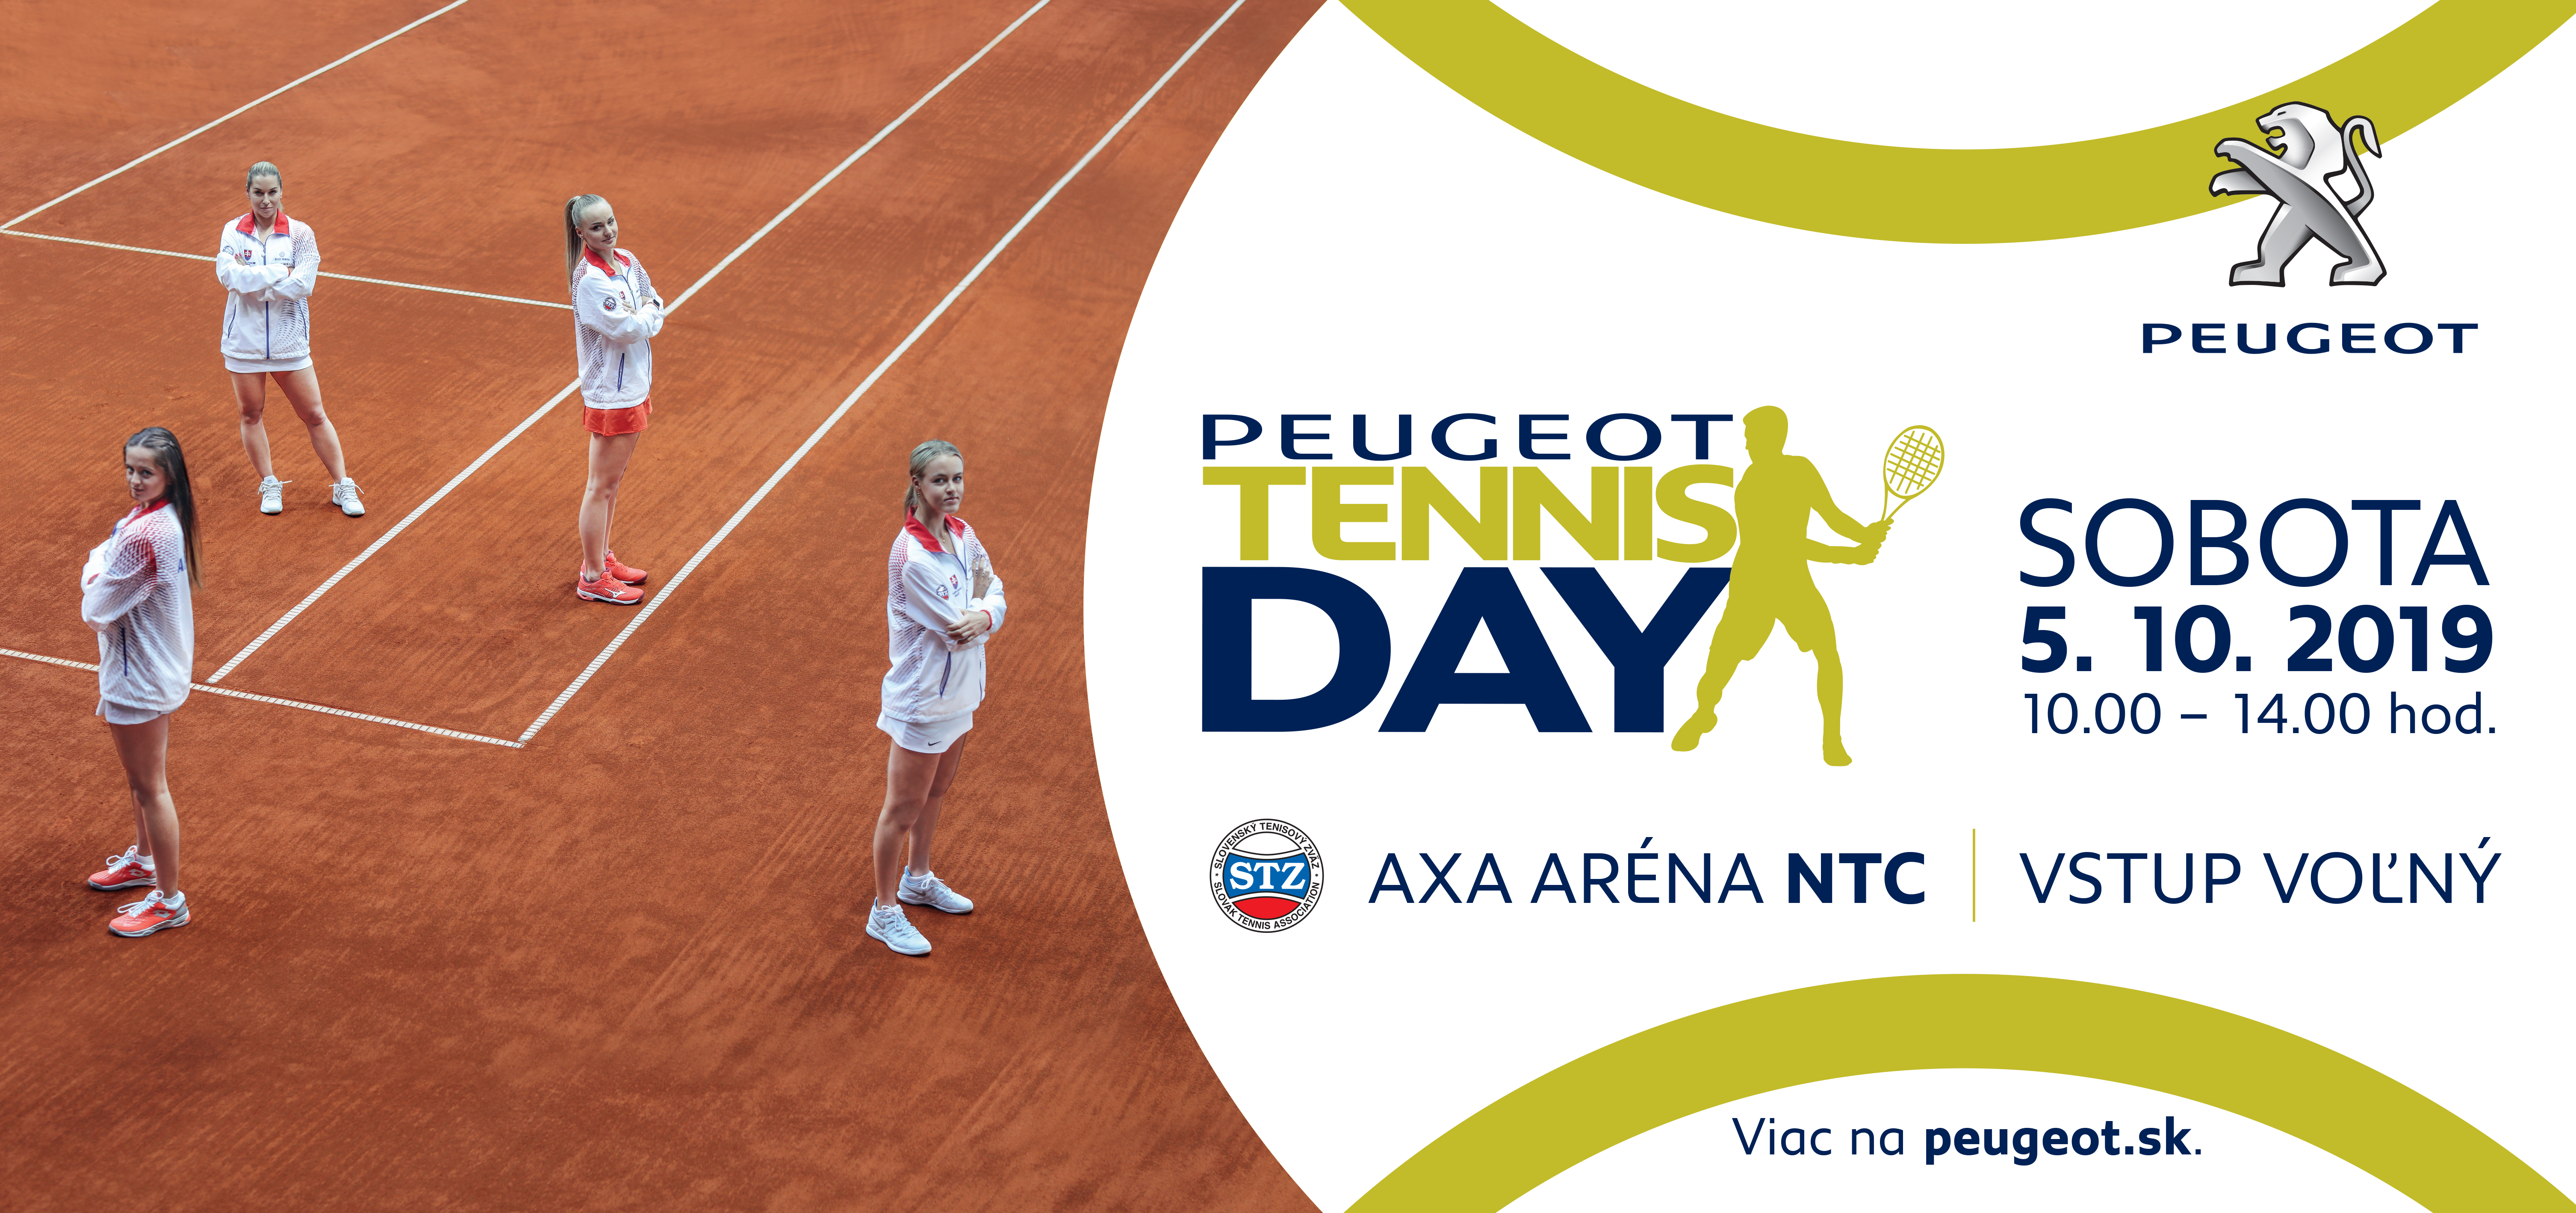 PEUGEOT TENNIS DAY